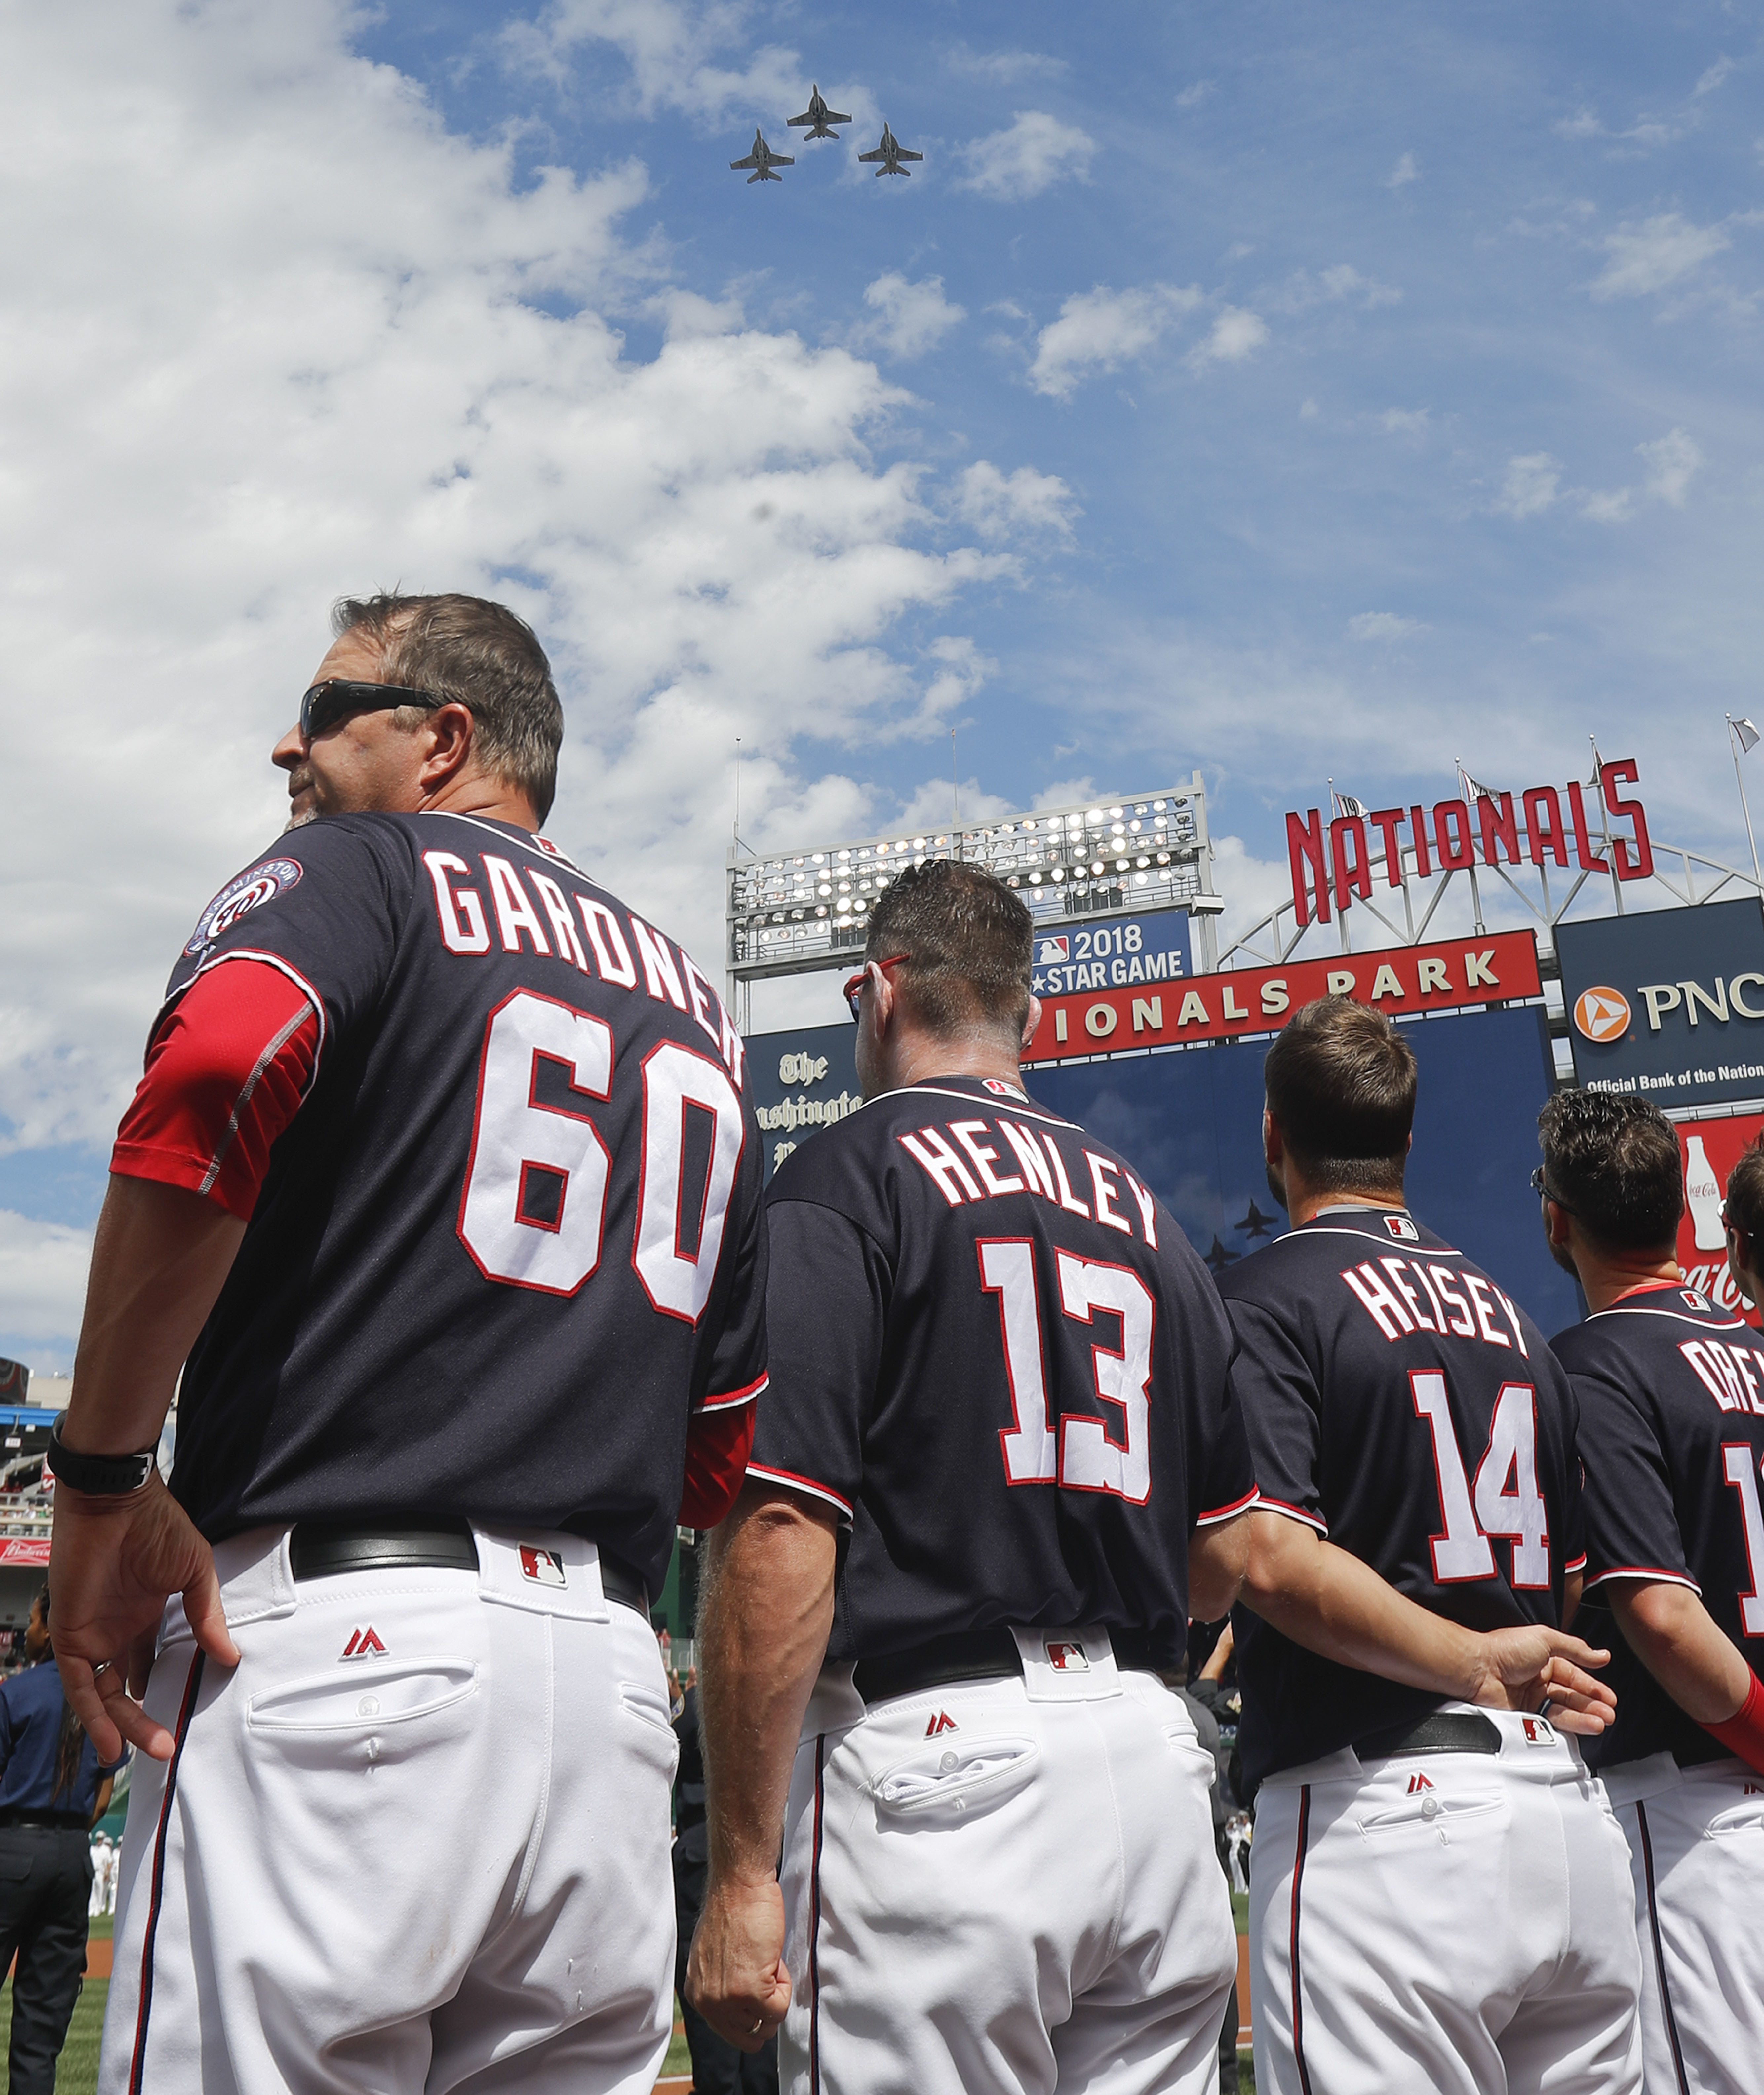 Members of the Washington Nationals watch a fly-over during pregame ceremonies before the start of a baseball game against the Philadelphia Phillies at Nationals Park, Sunday, Sept. 11, 2016 in Washington. The Nationals honored those who died in the attac